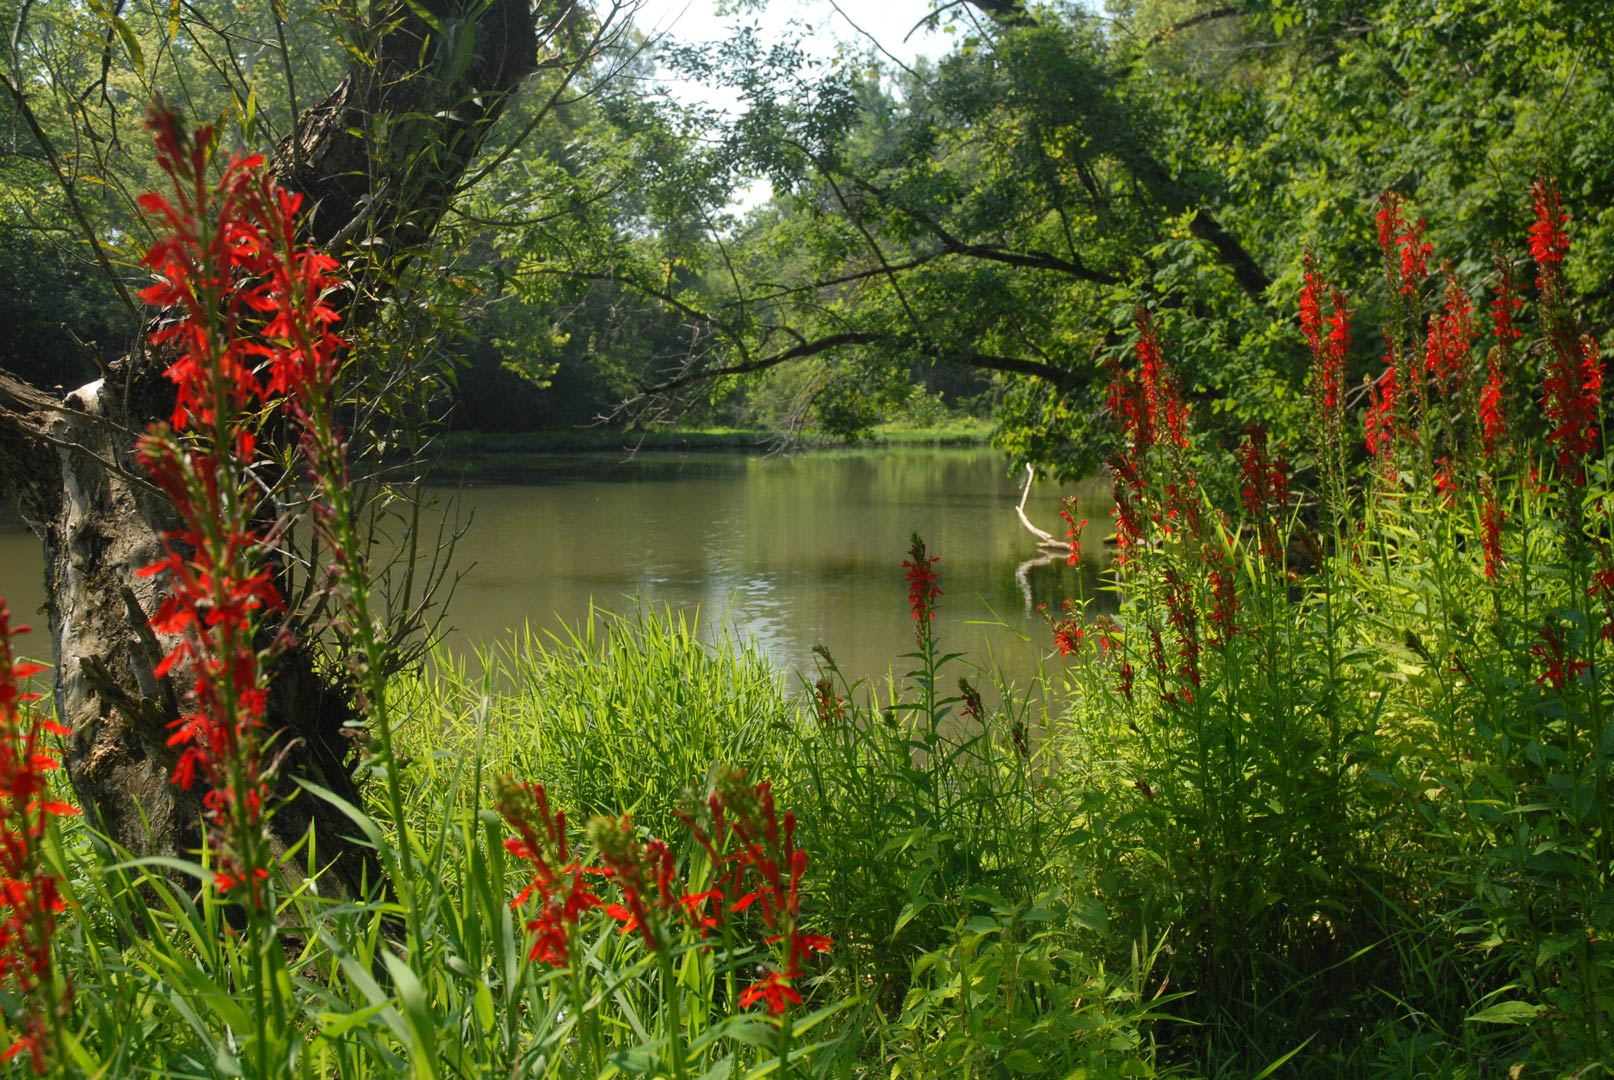 Battelle Darby Creek Metro Parks Central Ohio Park System Flower Val Pouch Kuning Cardinal Flowers By Mac Albin